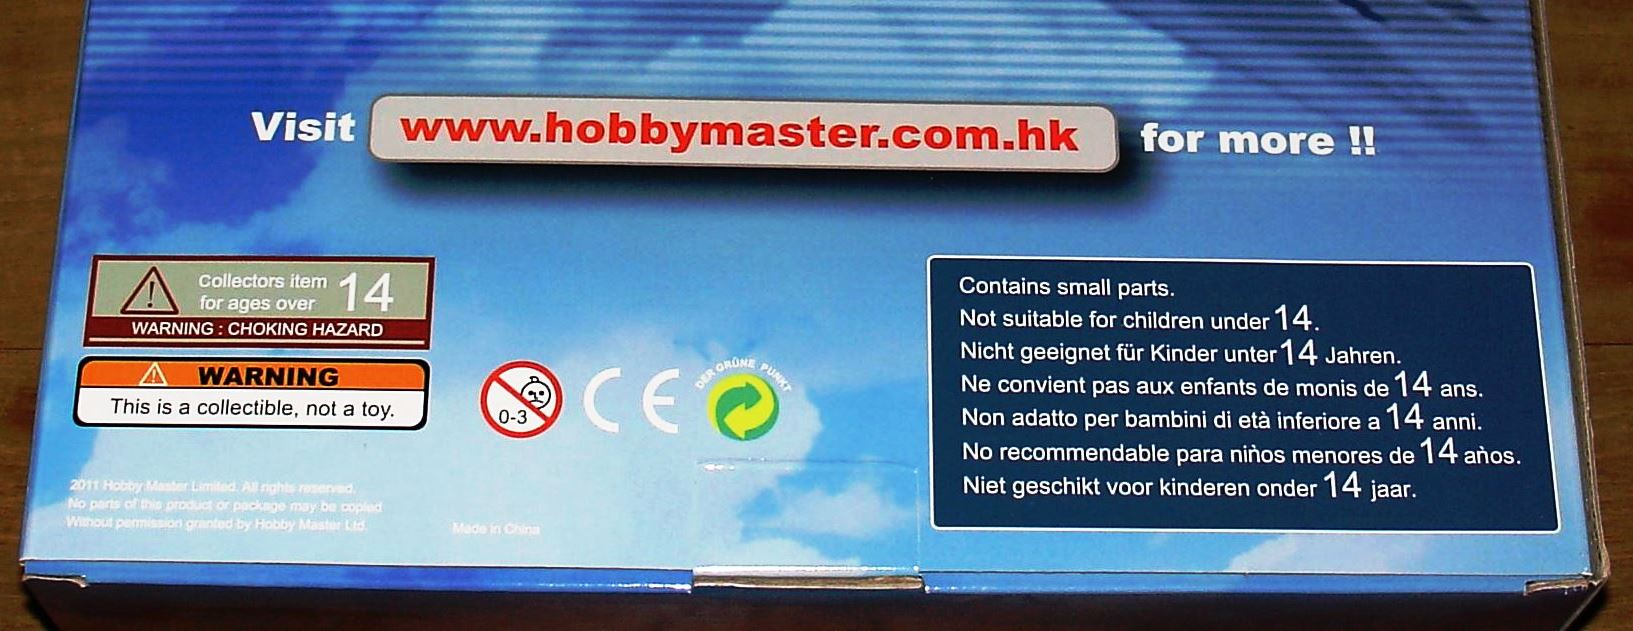 Hobby Master warning label.jpg